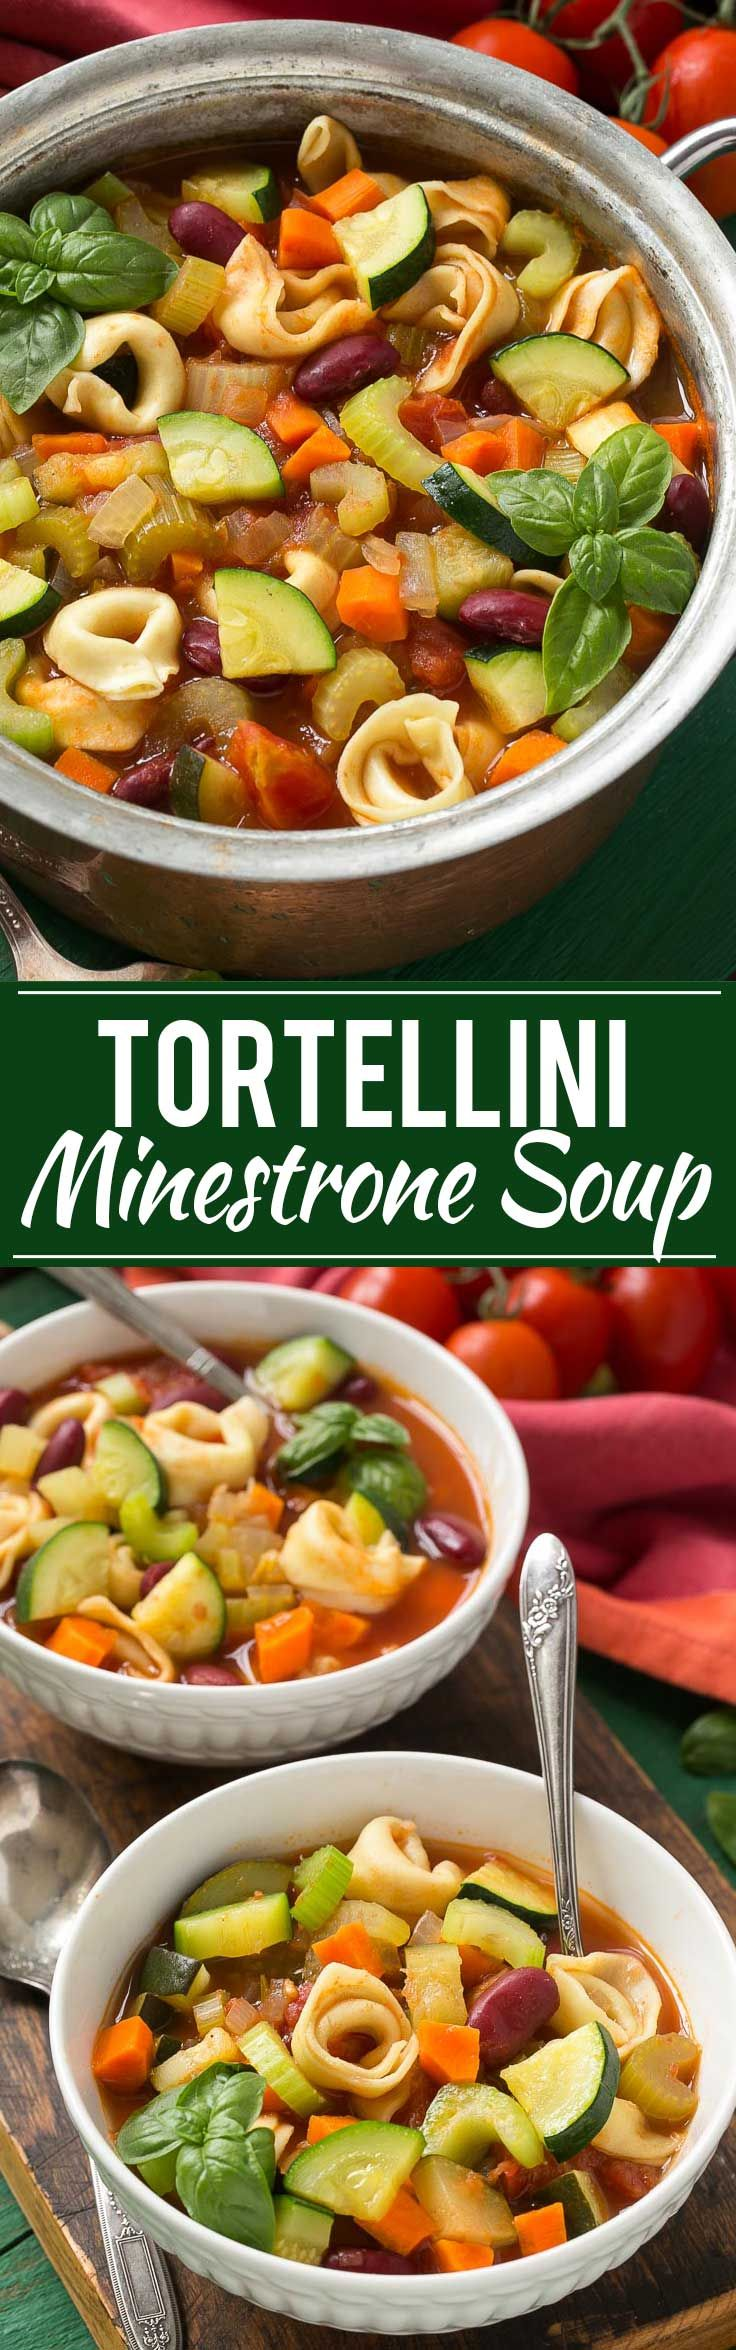 This one pot healthy minestrone soup is chock full of vegetables and tender cheese tortellini.